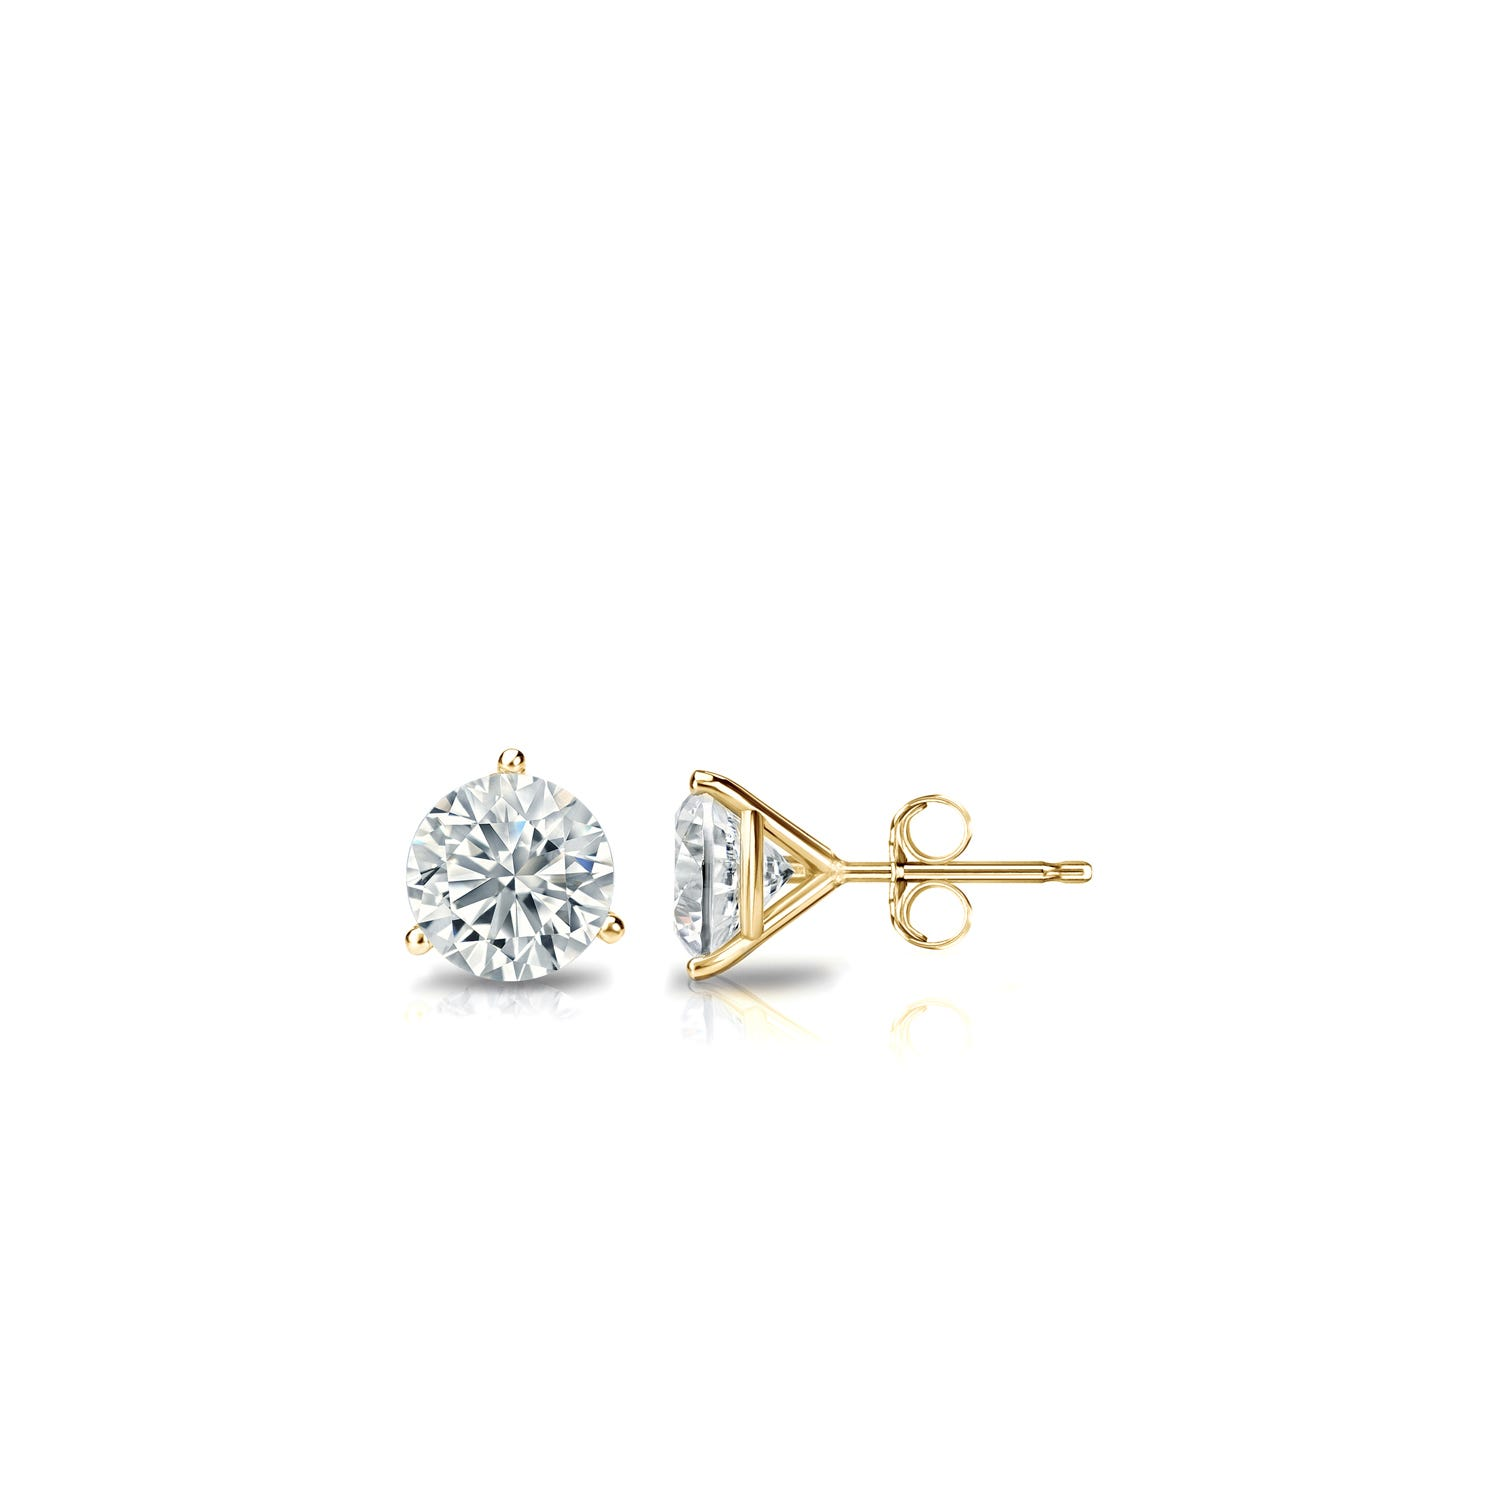 1/6 CTTW Round Diamond Solitaire Stud Earrings IJ VS2 in 14K Yellow Gold 3-Prong Setting